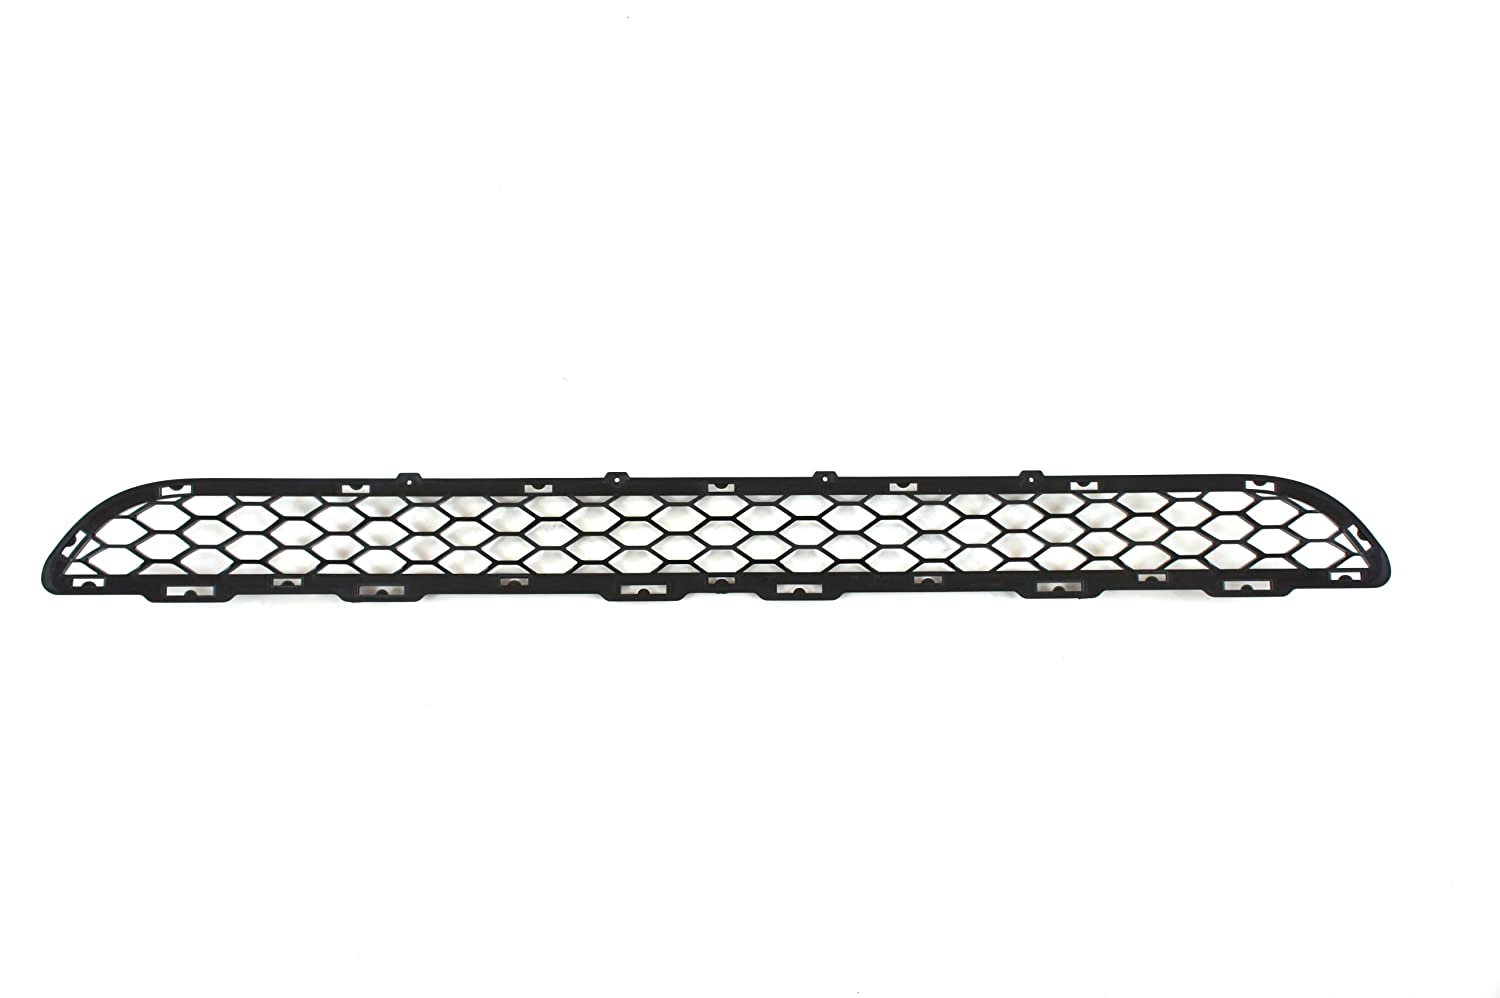 Genuine Hyundai Parts 86512-2B000 Front Bumper Grille